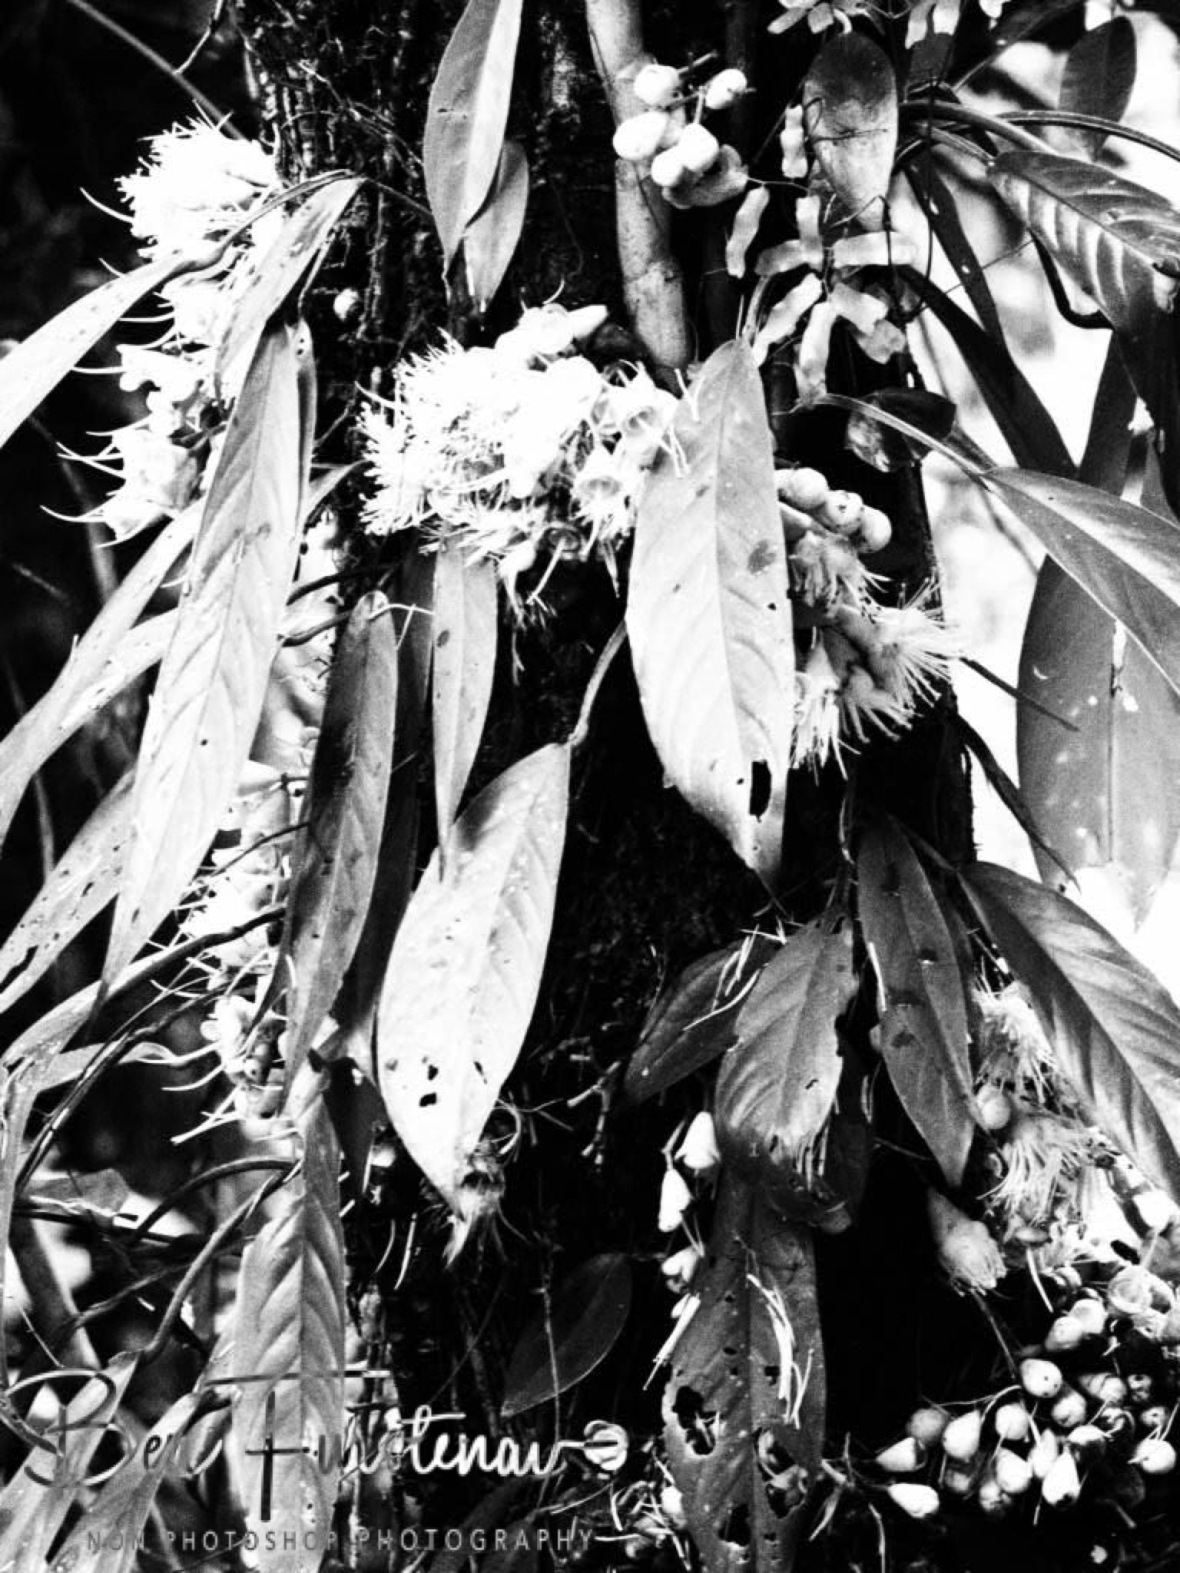 Floral display in black and white at Babinda, Tropical Northern Queensland, Australia